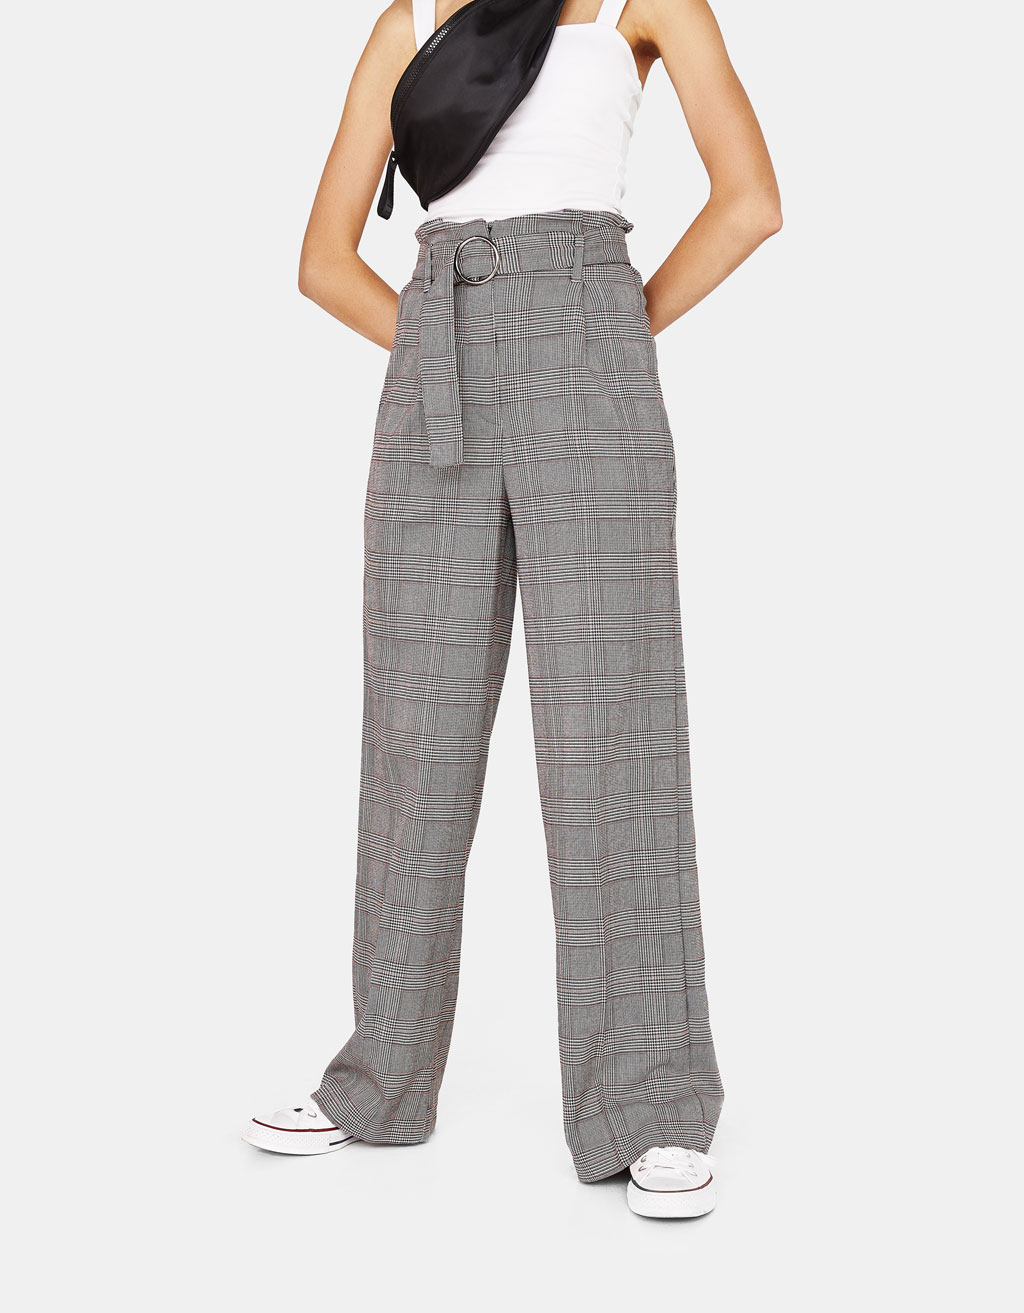 Plaid wide-leg pants with belt